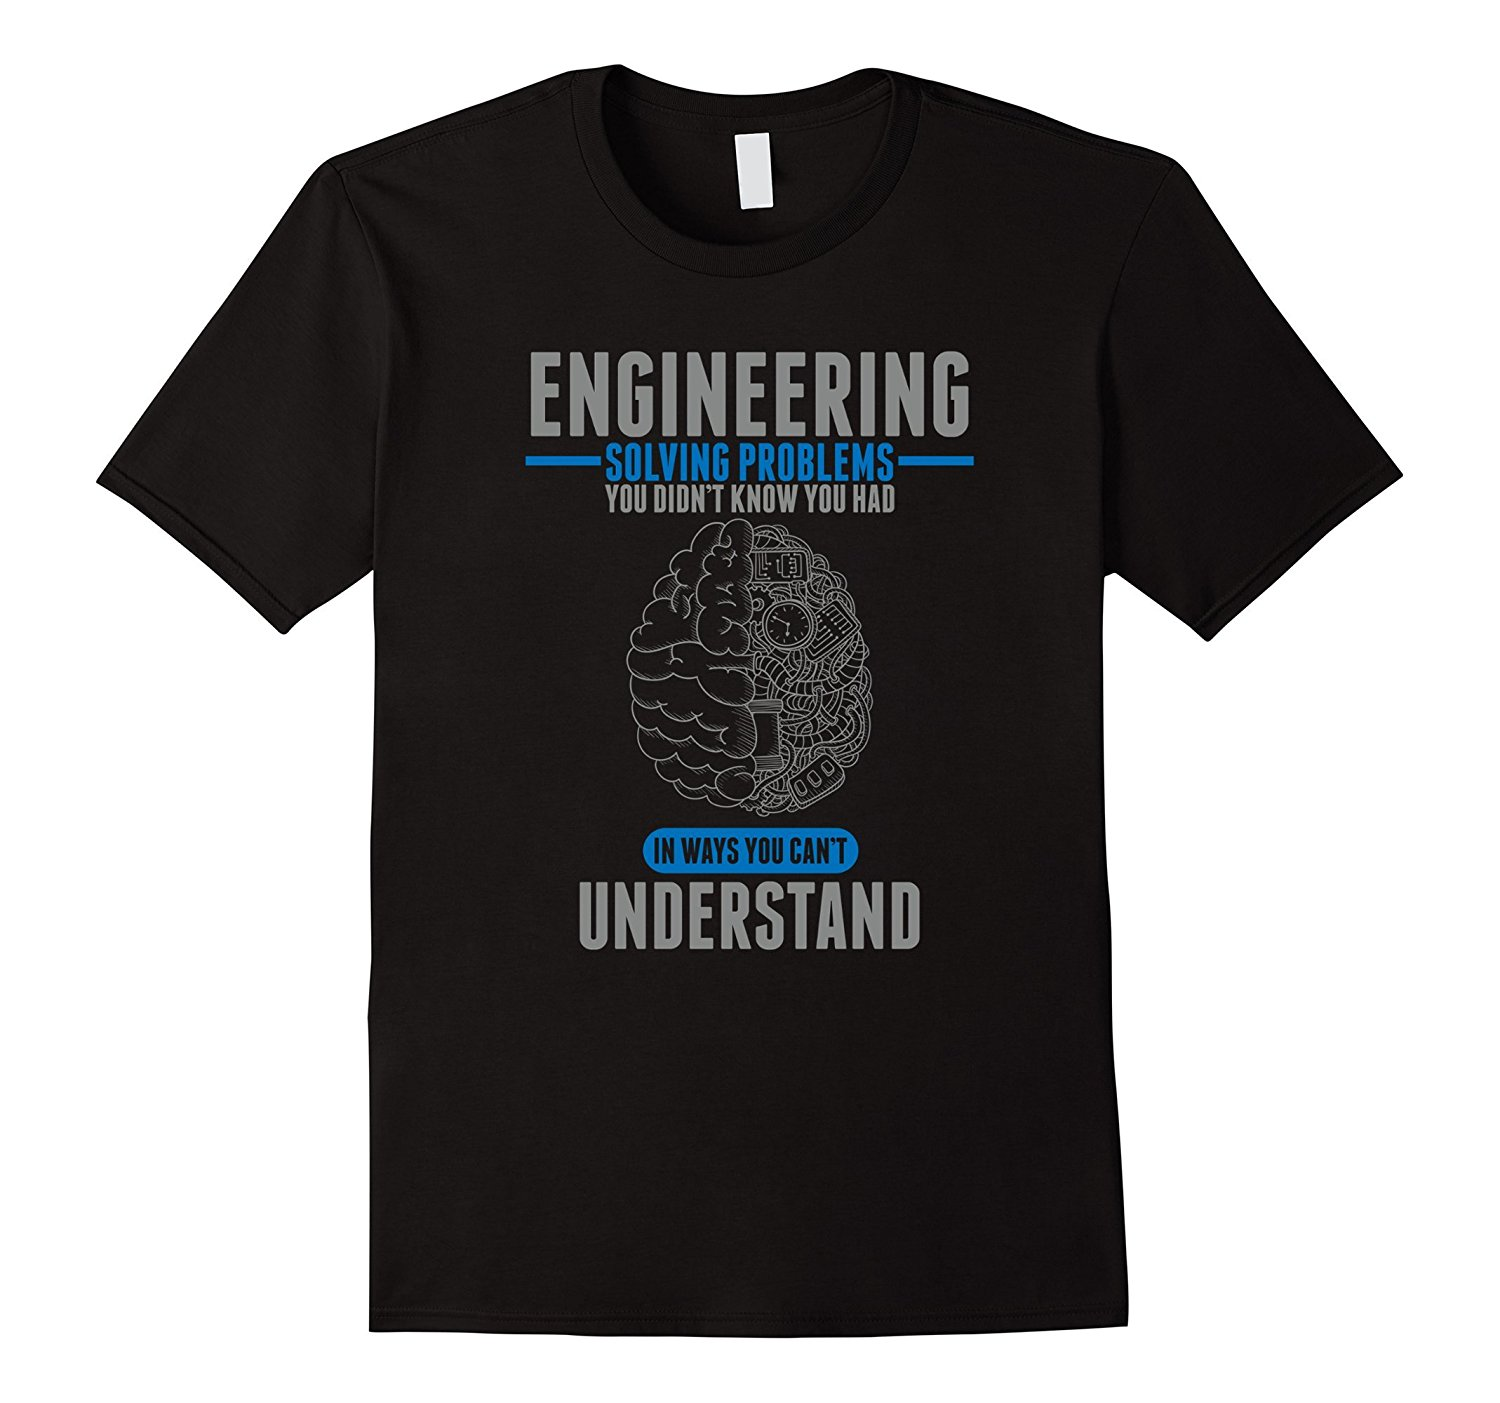 Engineer Solving Problems Funny Engineering T-Shirt 2017 New Summer Men Hot Sale Fashion ...